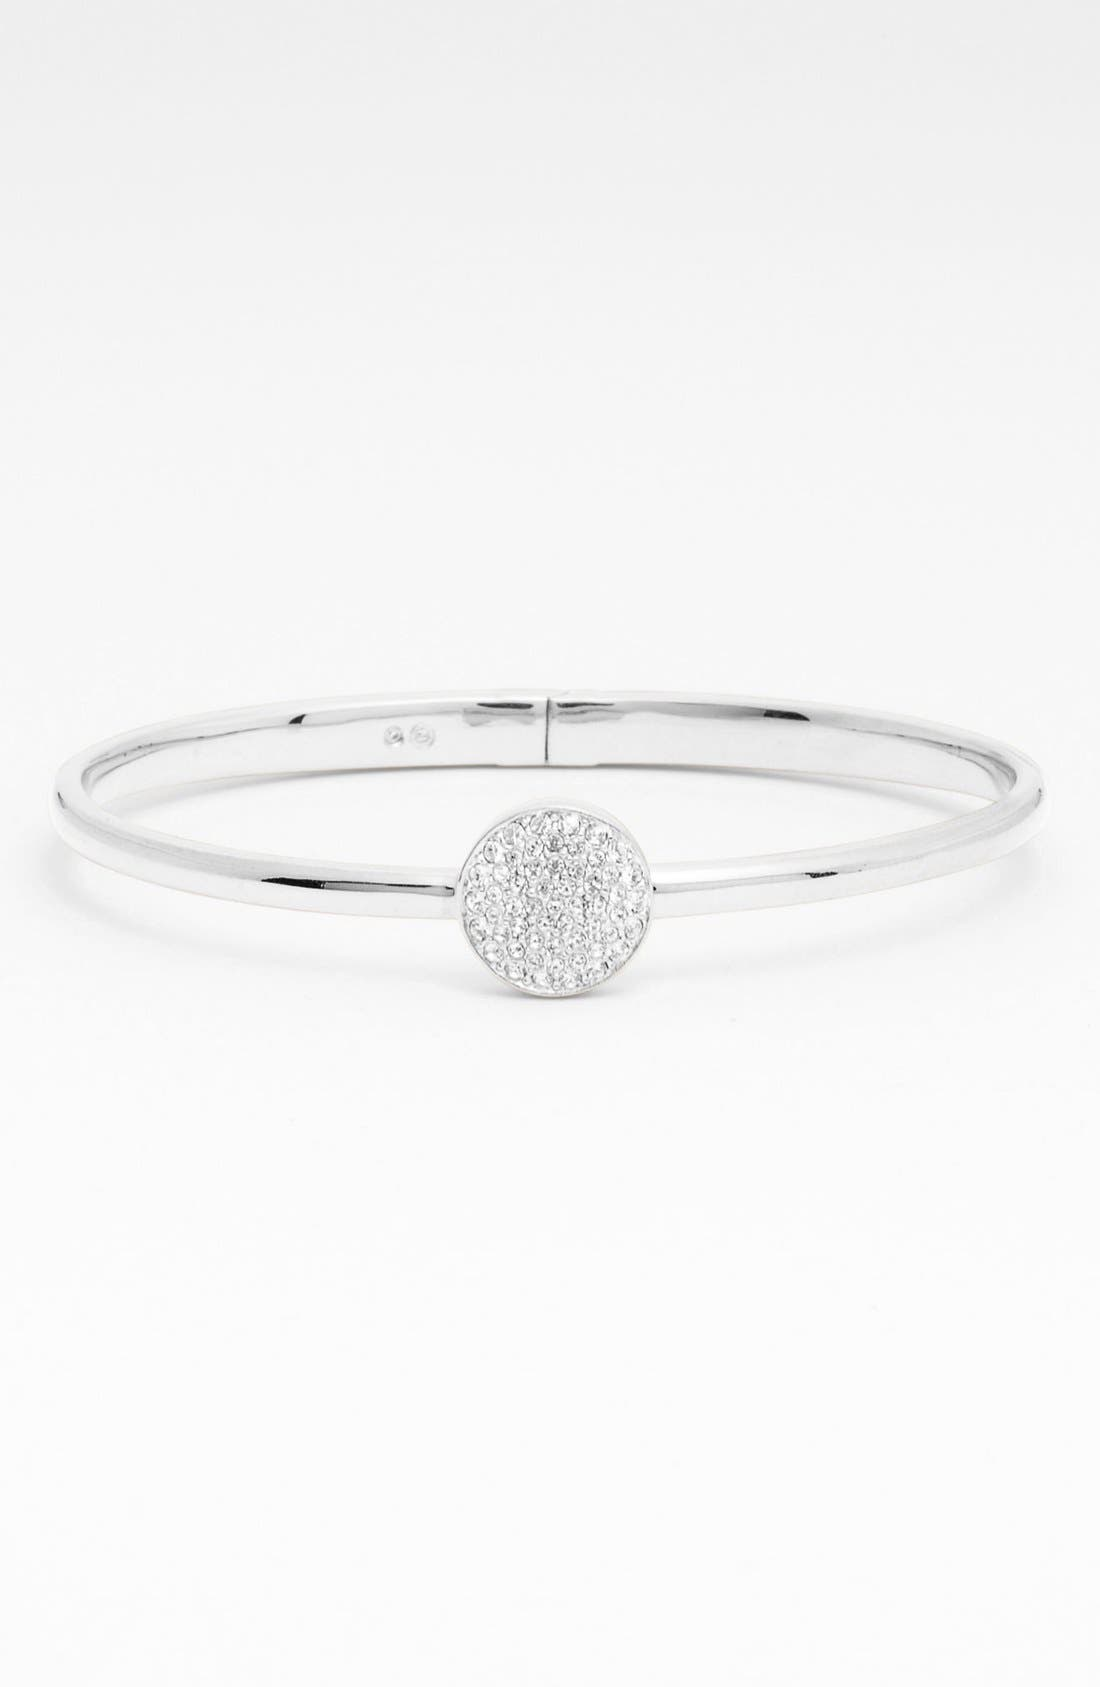 Alternate Image 1 Selected - Nadri 'Charmers' Pavé Station Hinged Bangle (Nordstrom Exclusive)